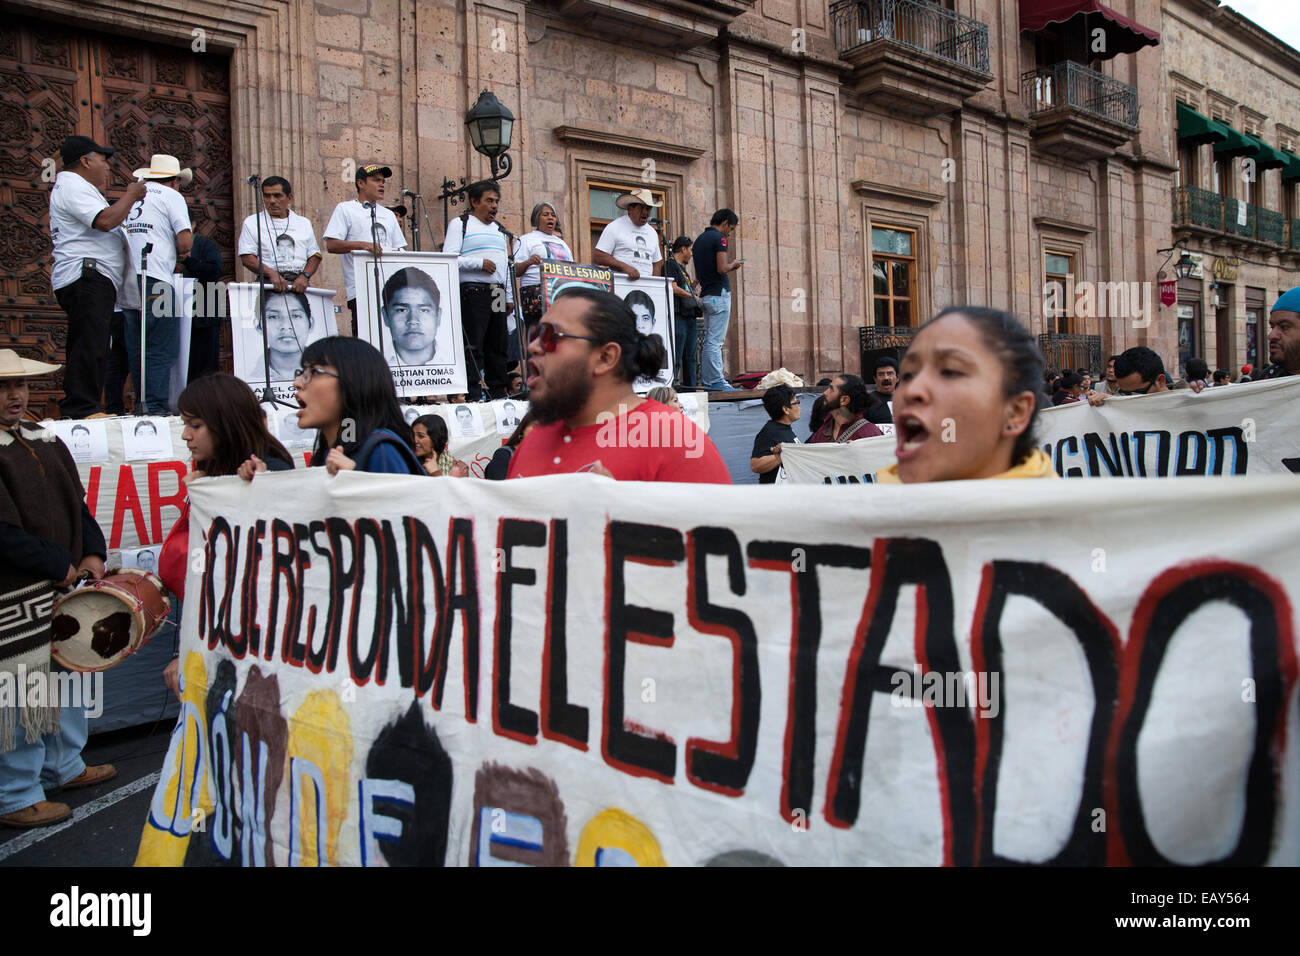 Demonstrators march to demand justice for the disappearance of 43 students from Ayotzinapa's teacher training college - Stock Image